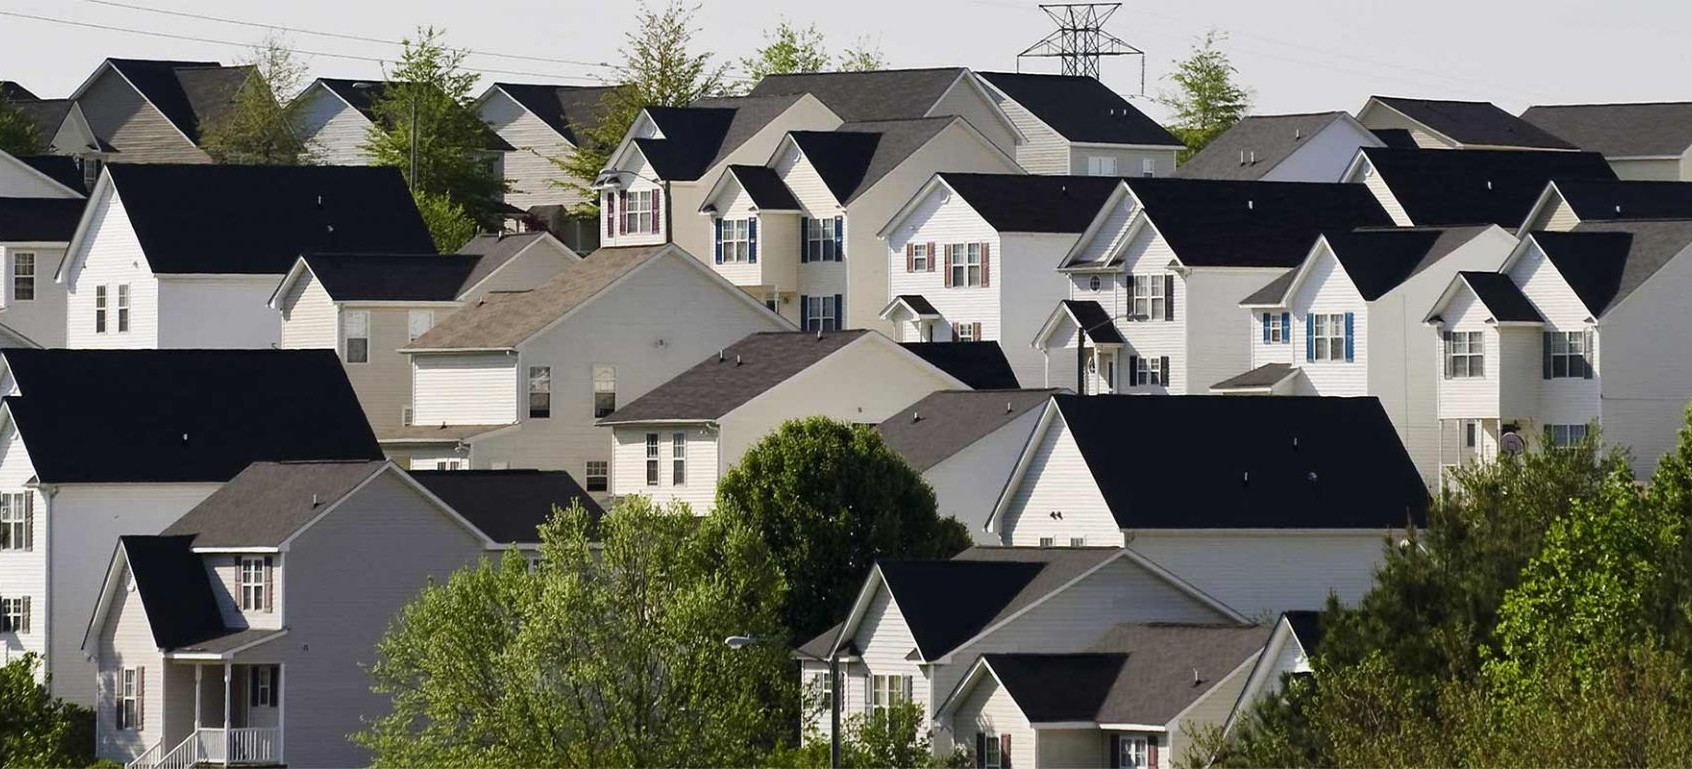 $10 Billion for Direct Housing Payments